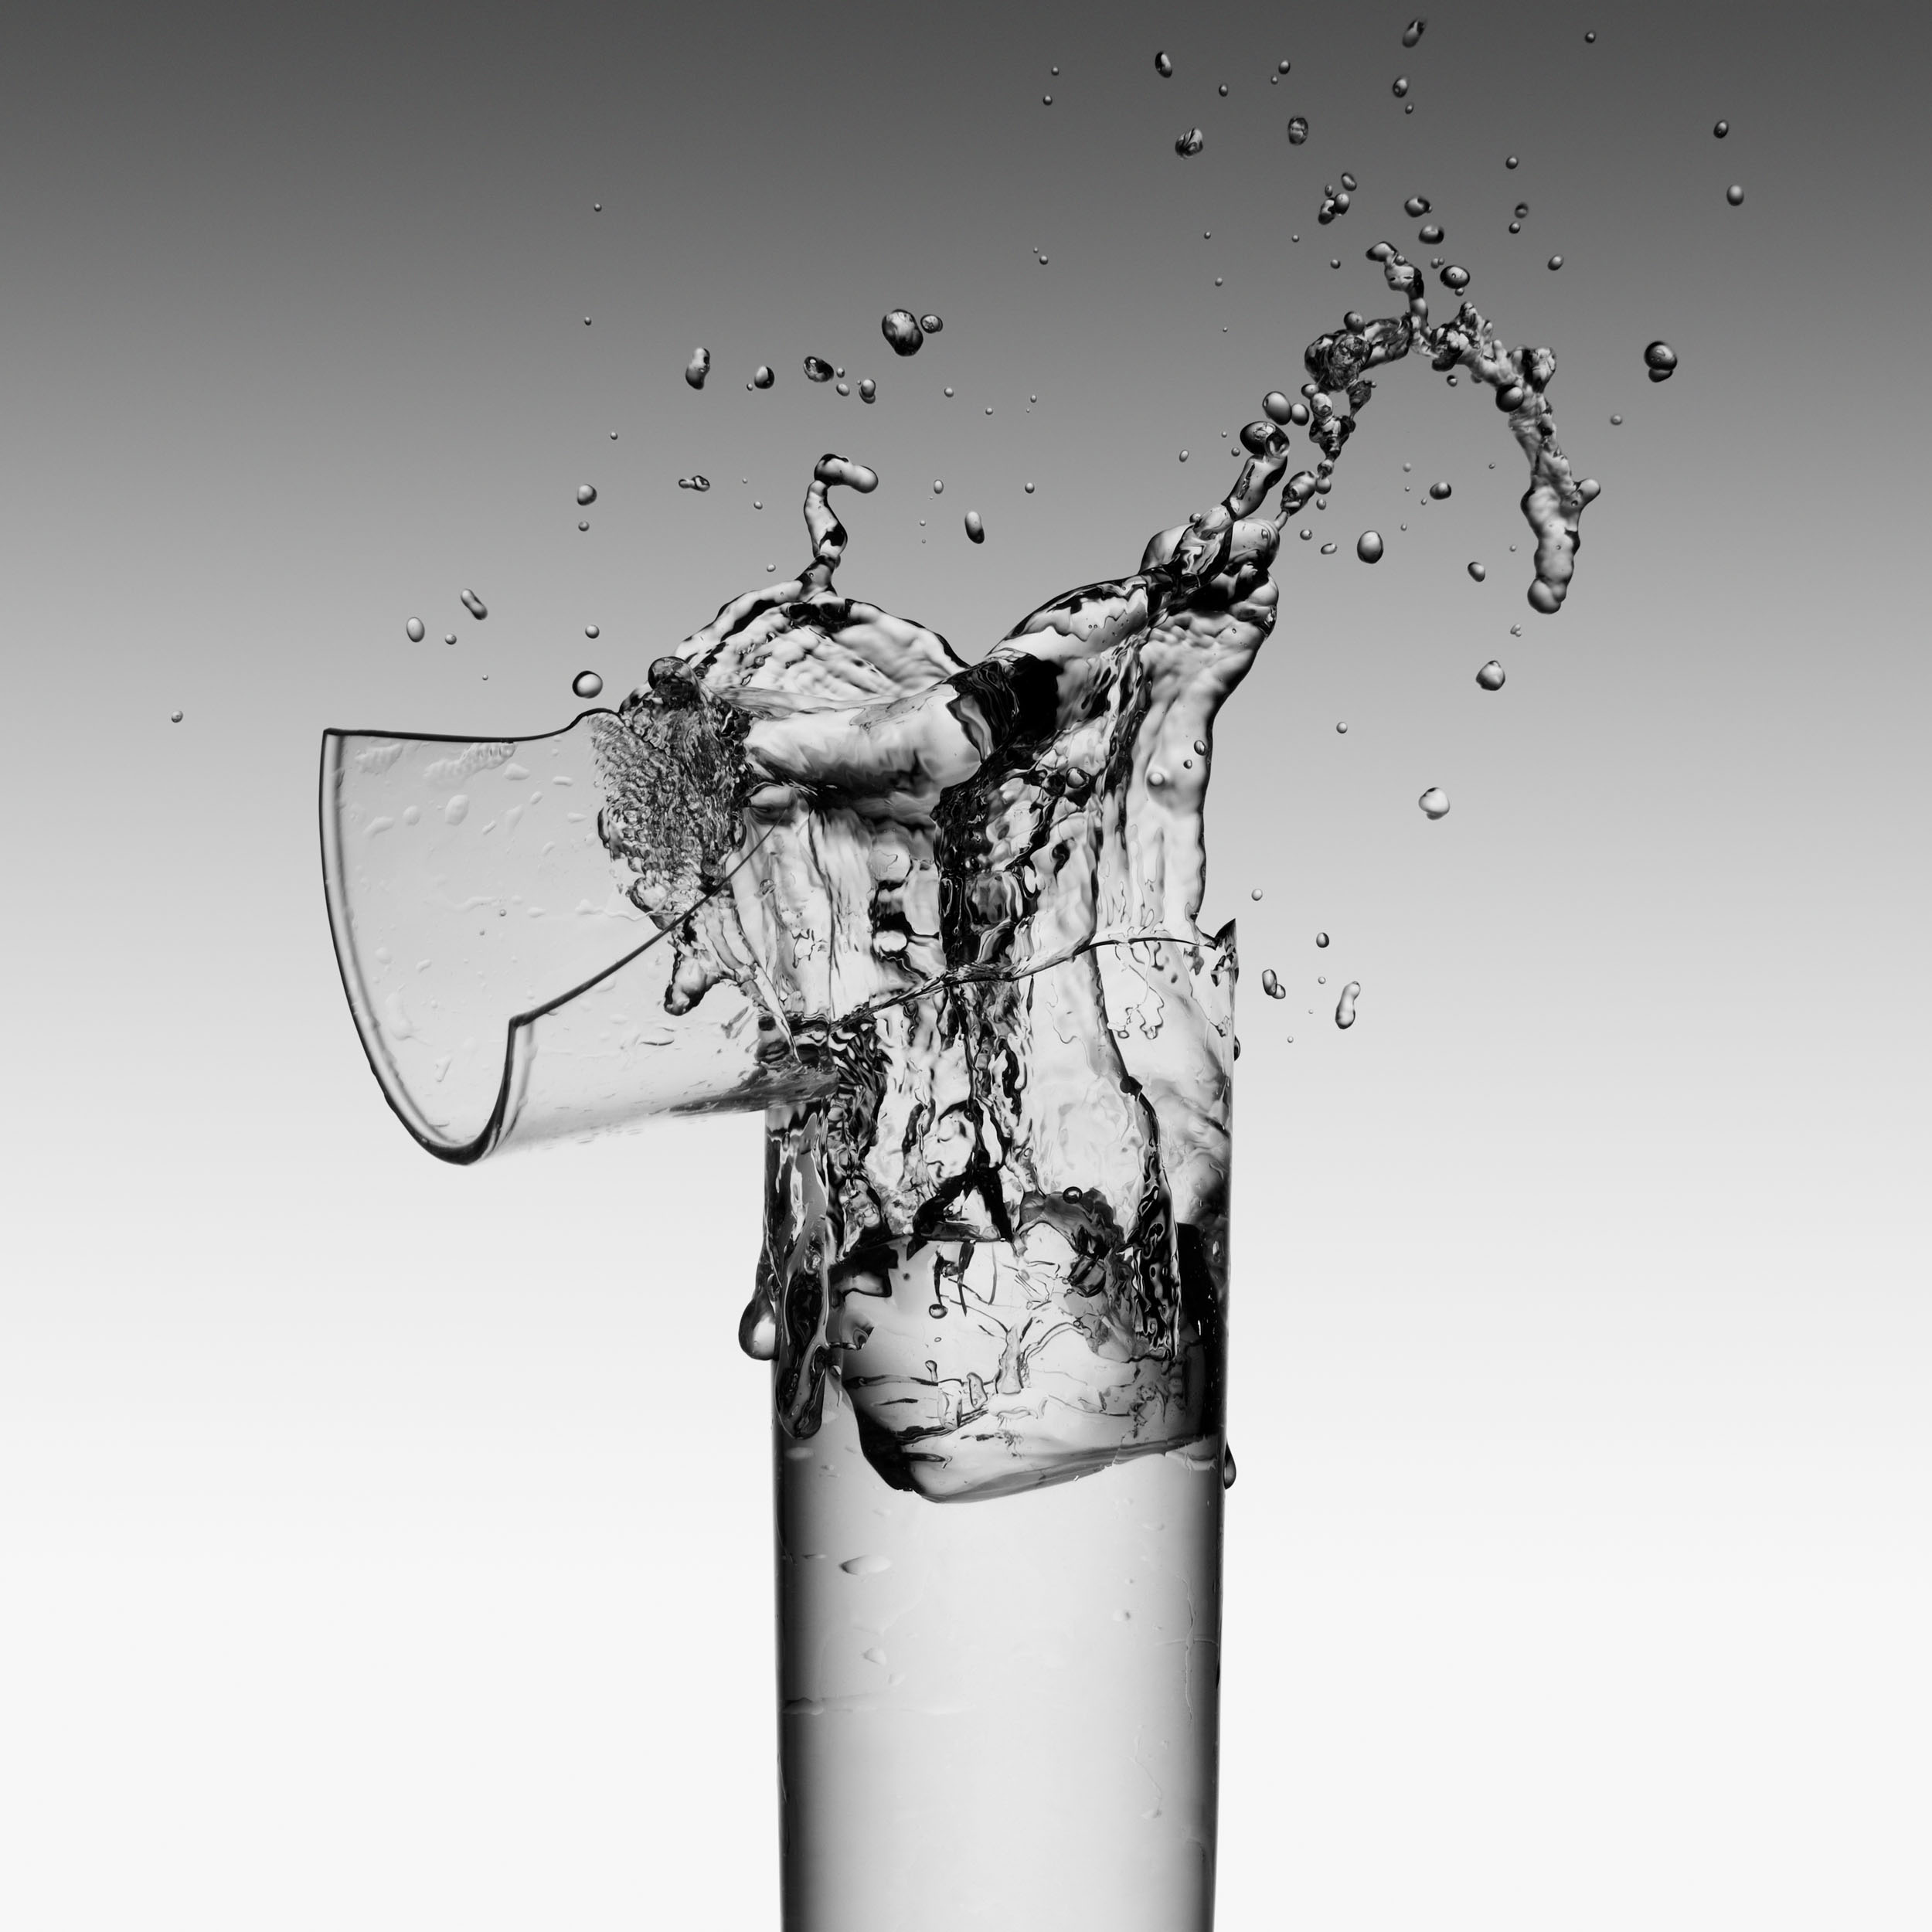 +Water Splash_058_RS8xten.jpg